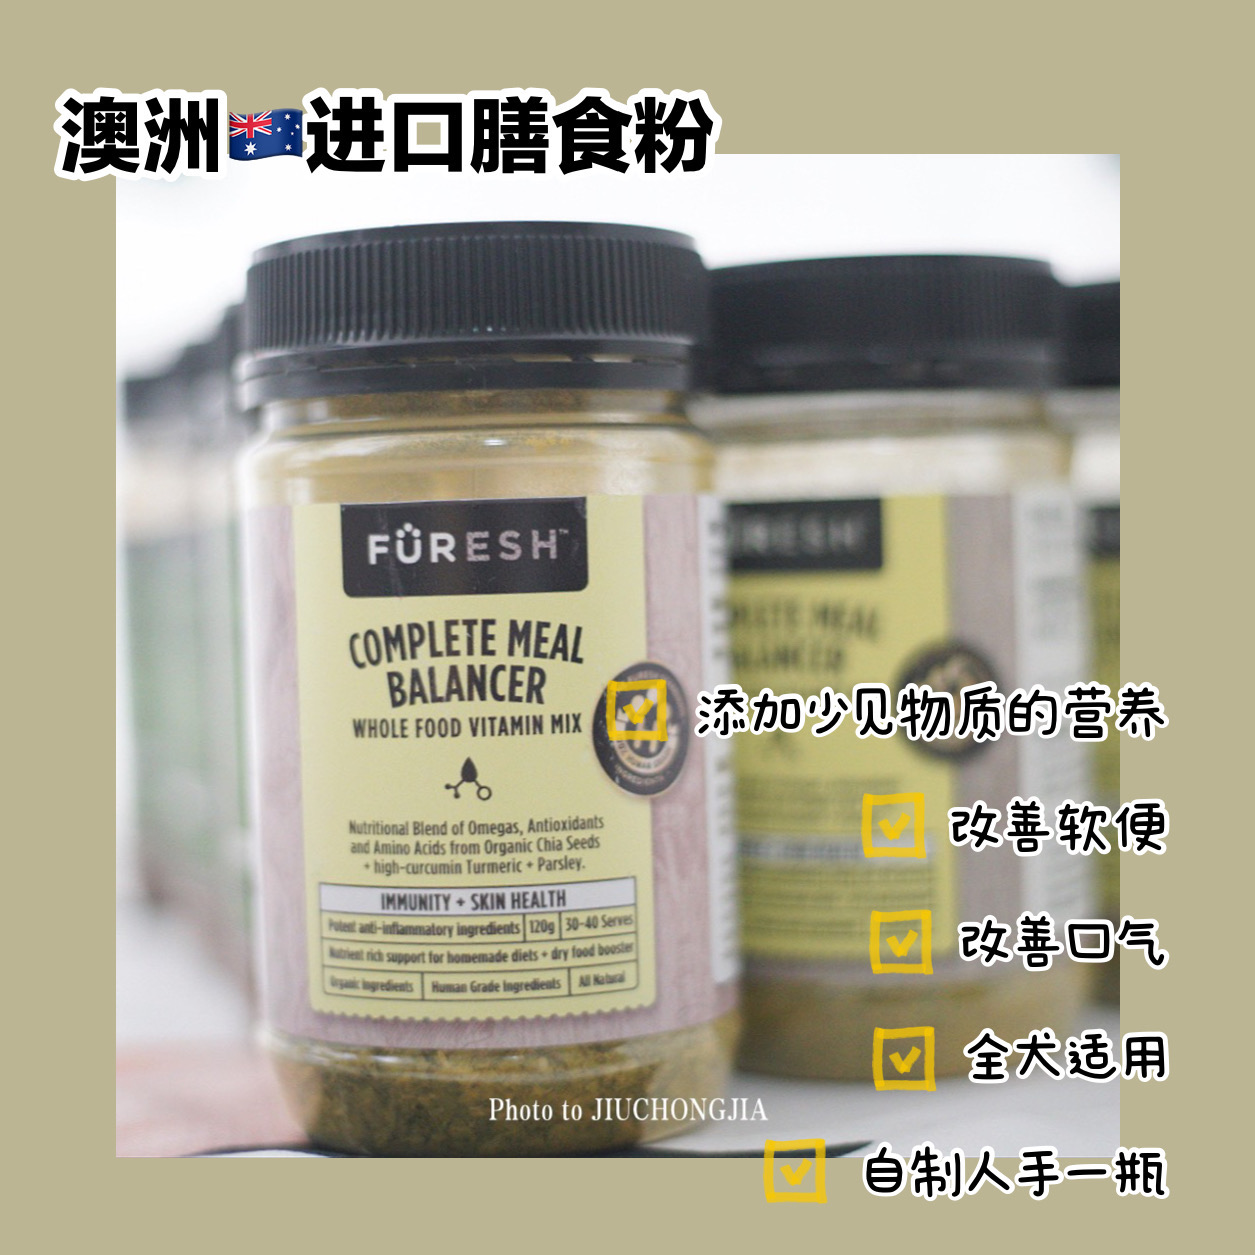 Pre sale of Australia imported furesh cat and dog dietary balance powder to enhance immunity dog and cat pet health products